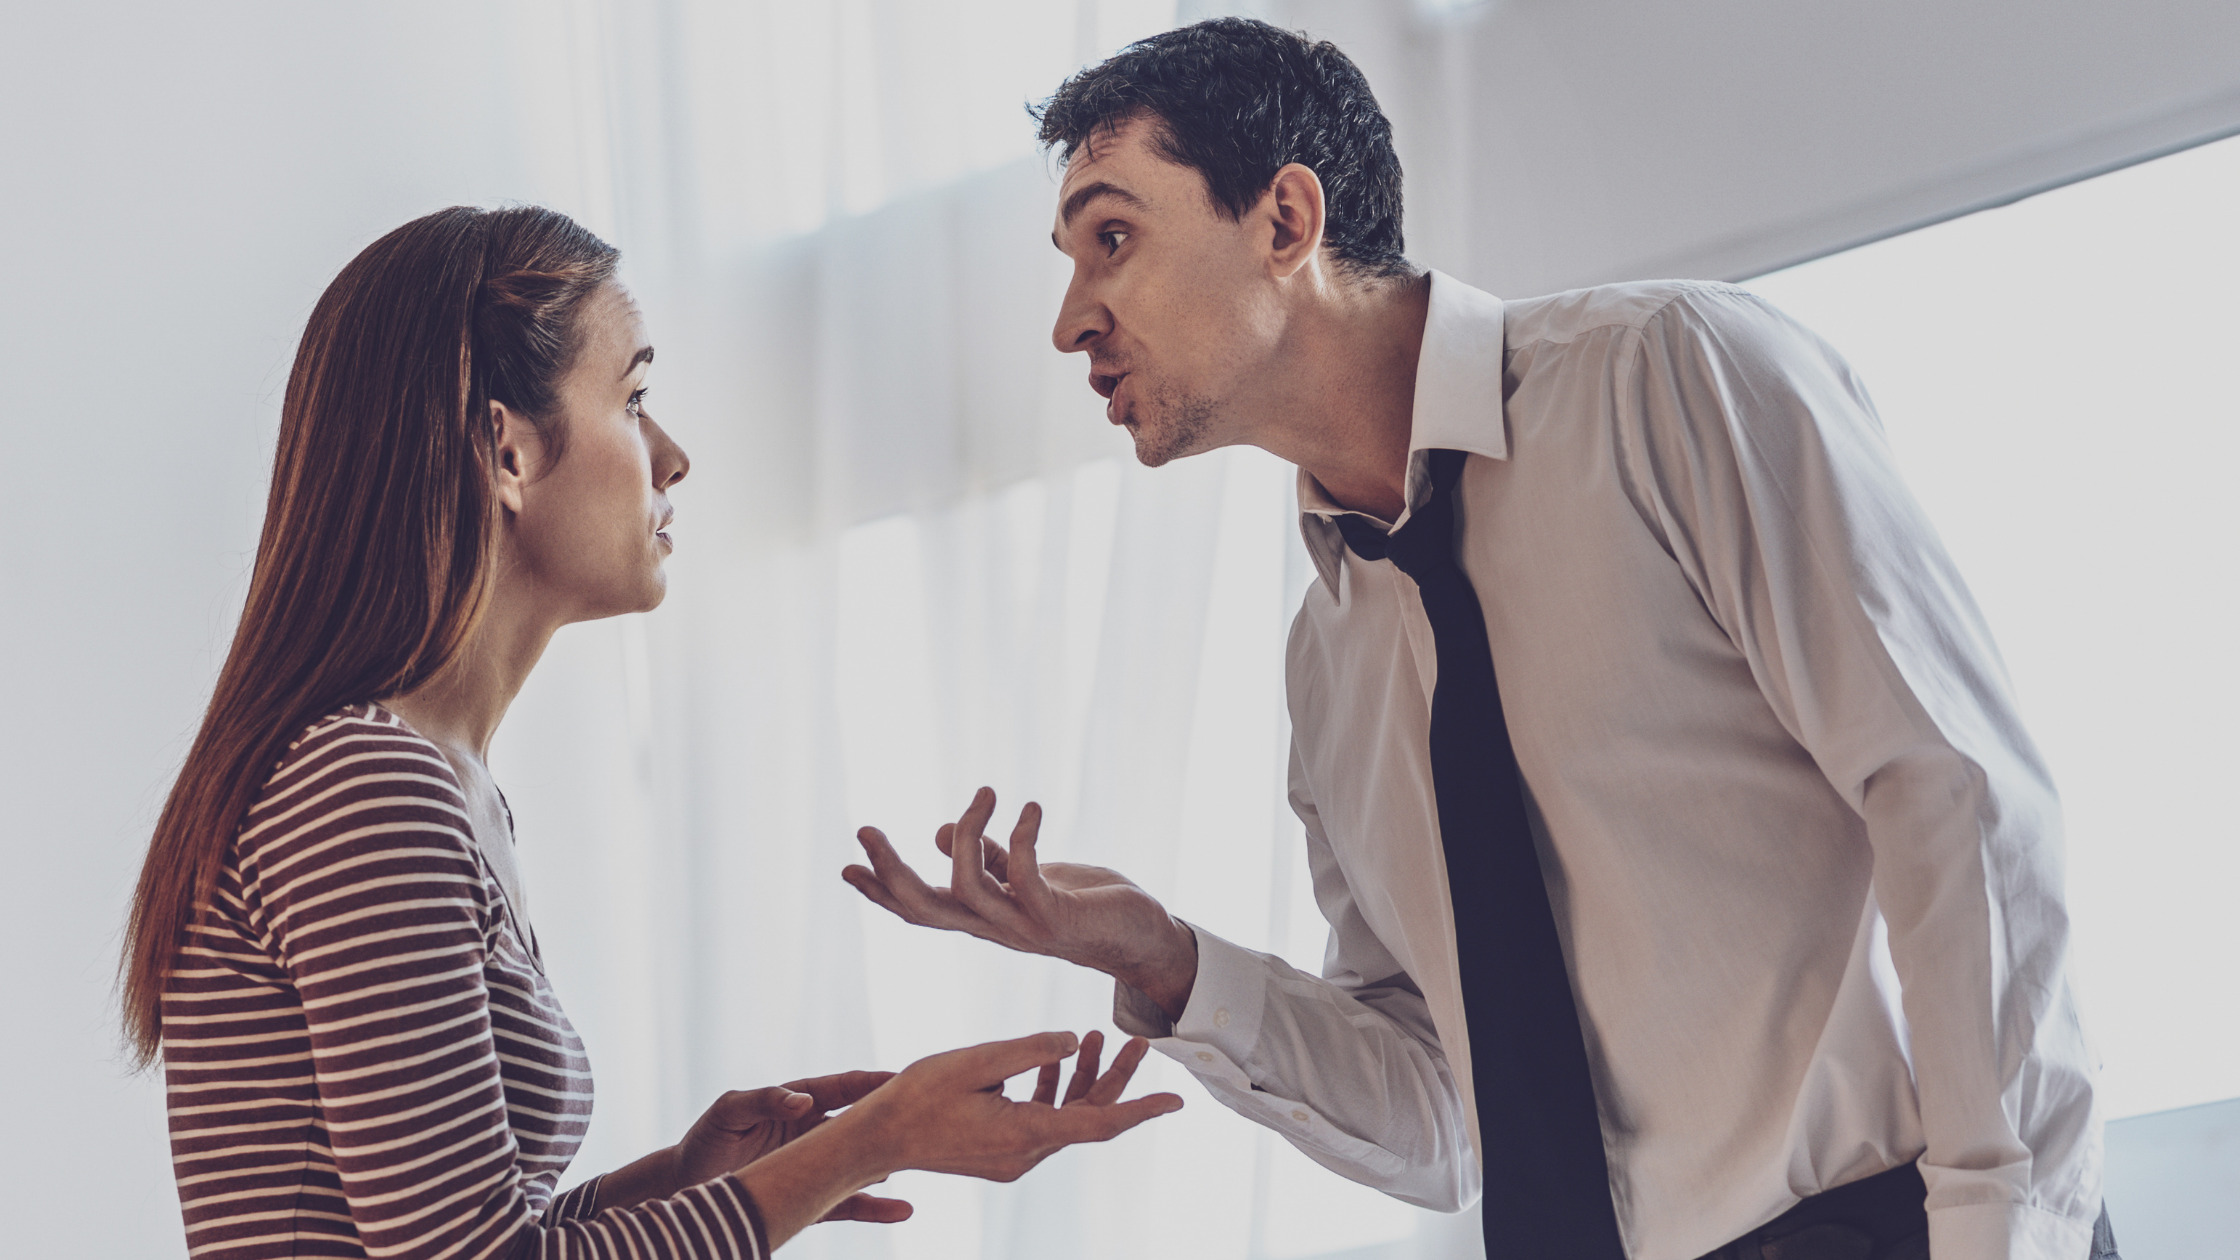 What I Can Do To Address Conflict In My Relationship